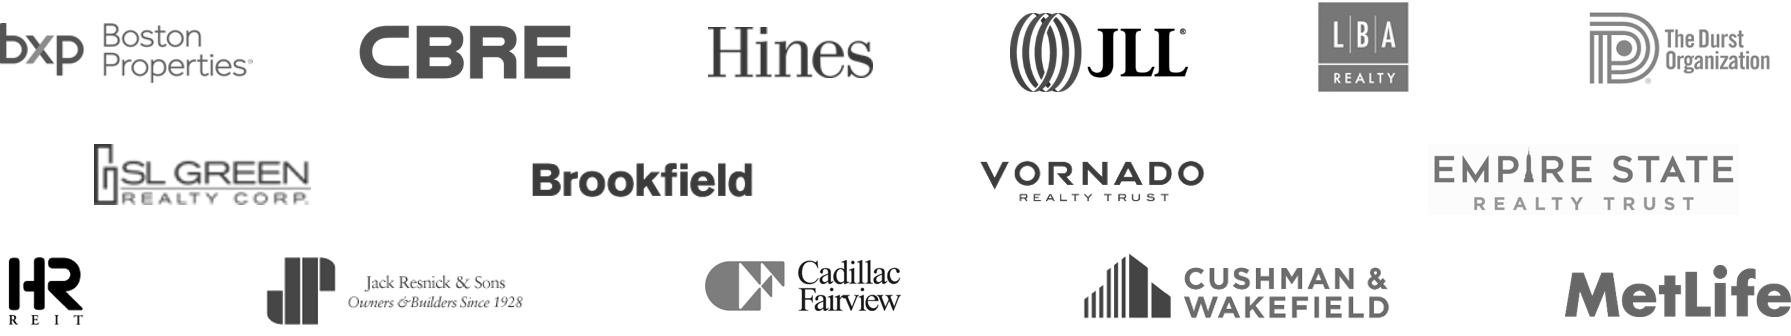 Trusted for Over 20 Years By The Industry's Top Real Estate Brands